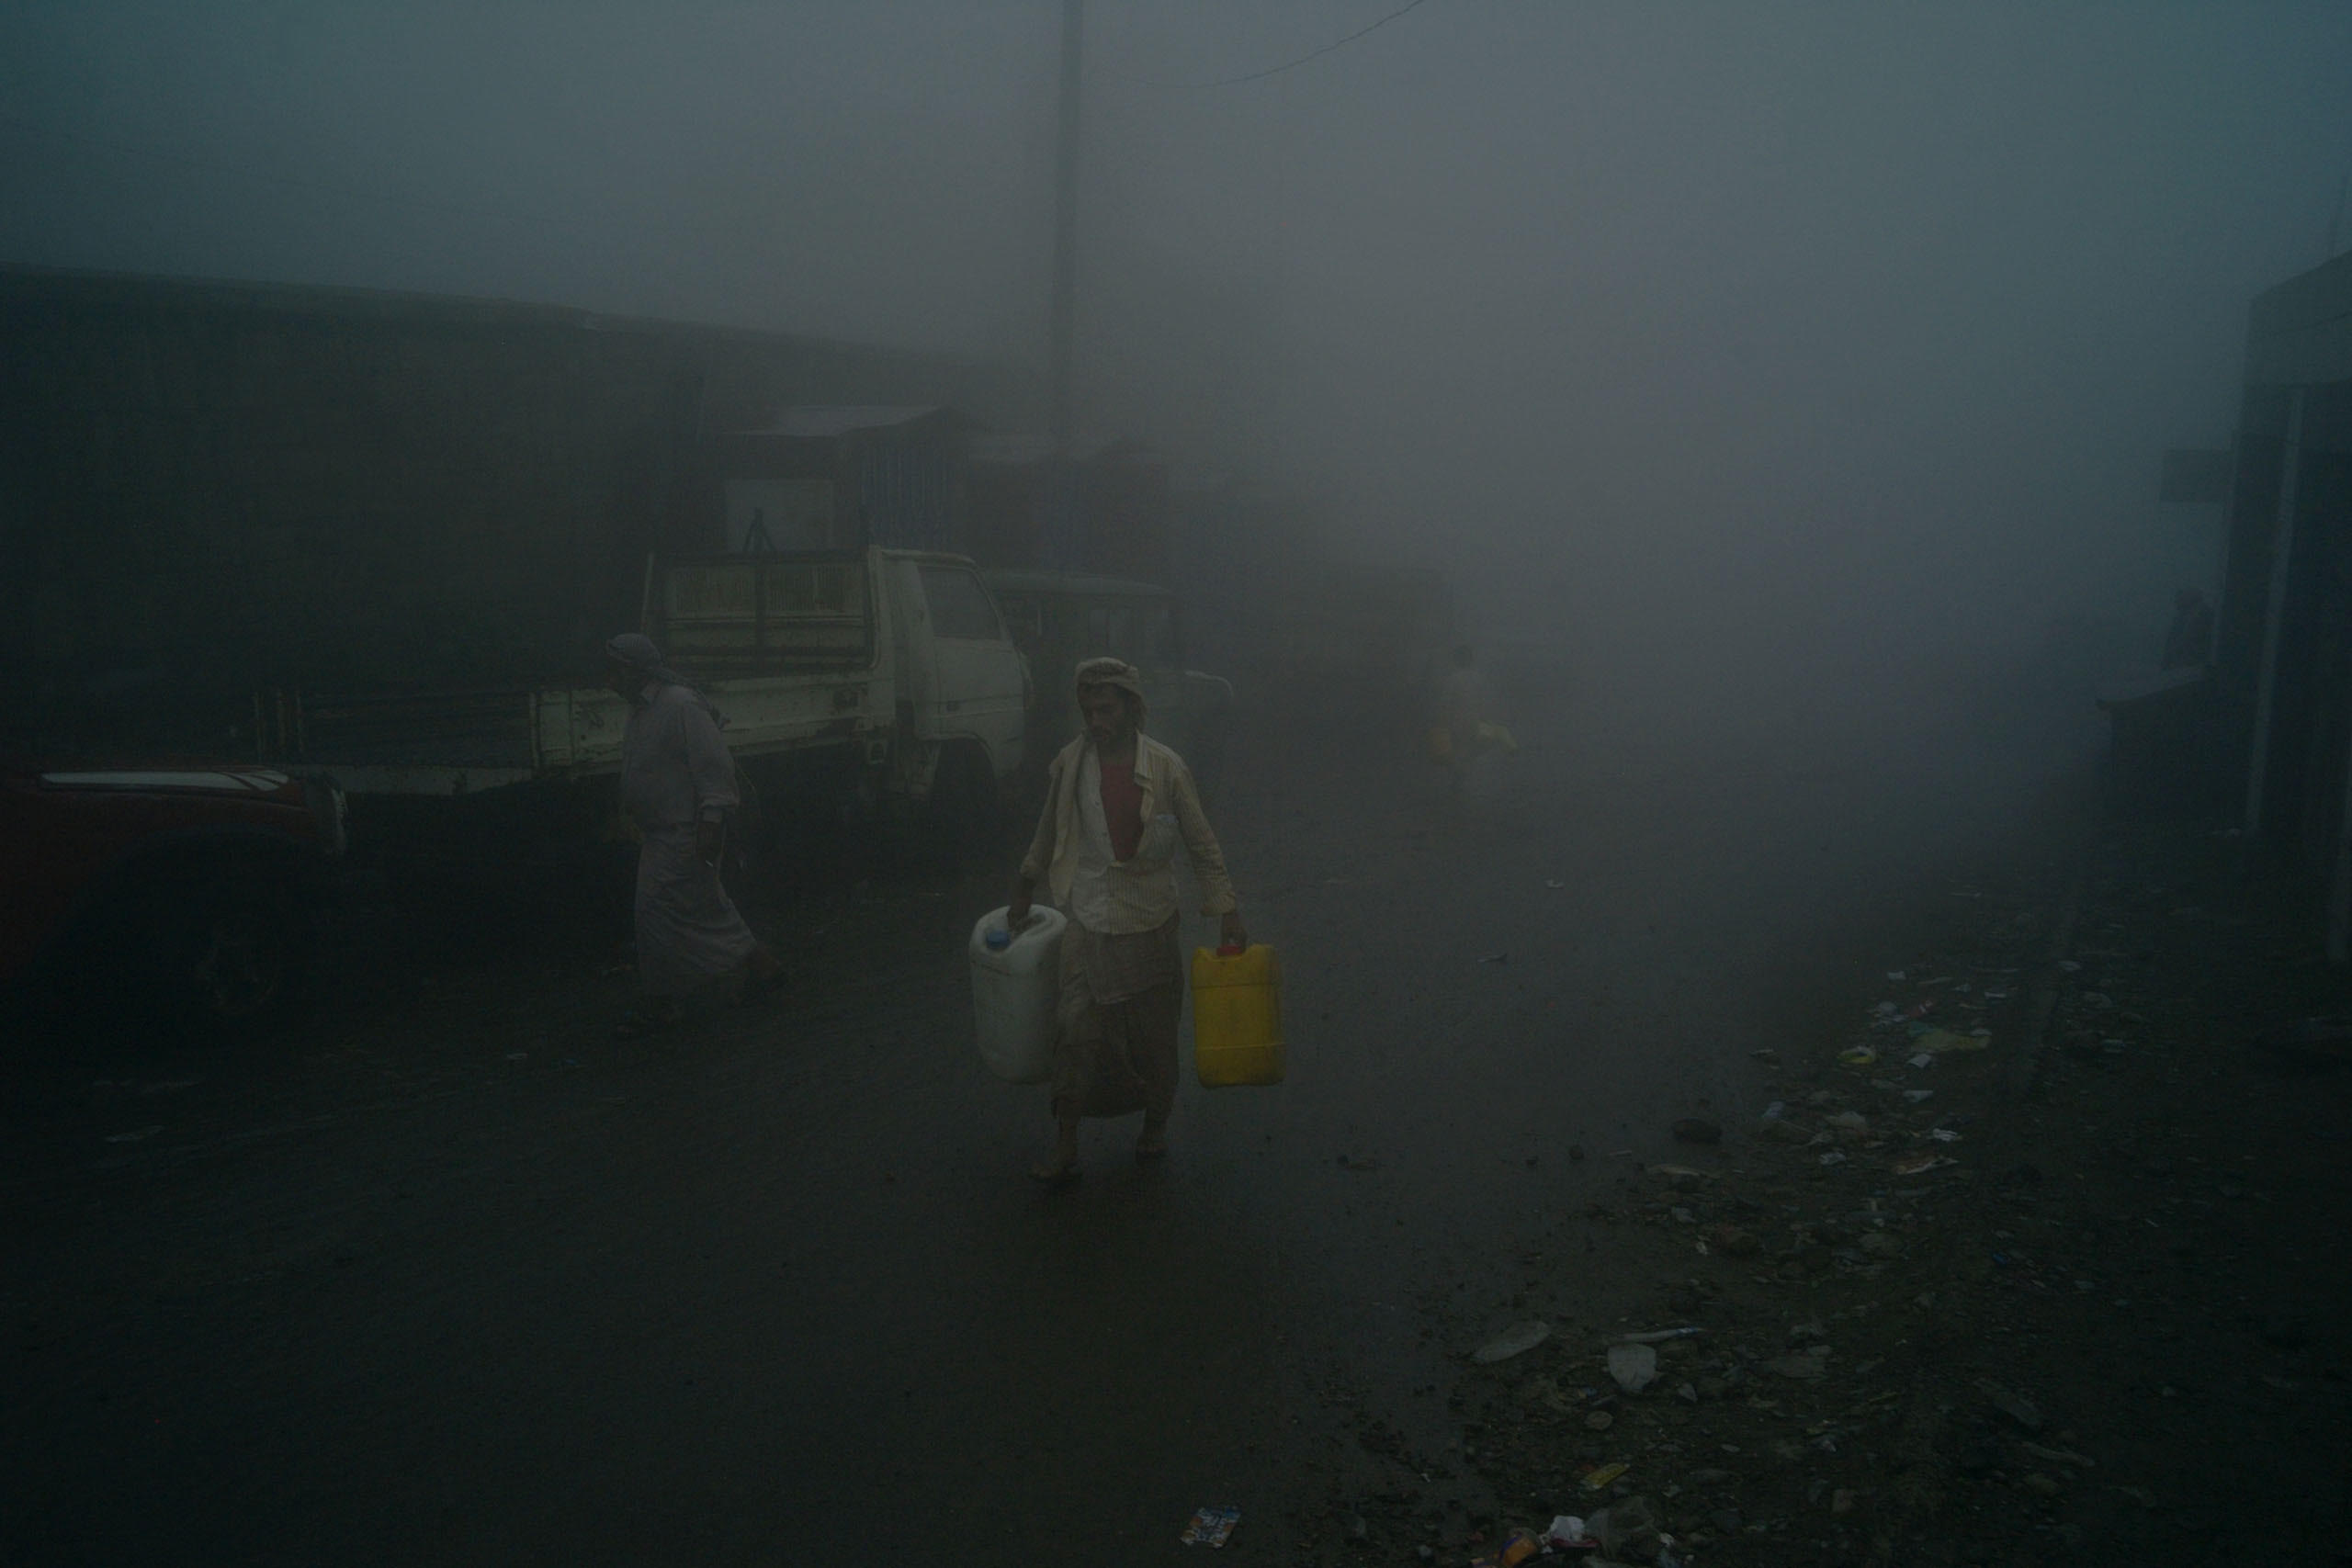 A man carries water in the streets of Hajjah in Yemen's northwestern provinces where civilians struggle for access to safe drinking water since the Saudi-led airstrikes began in March 2015. While international NGO's provide some relief, Yemen faces a severe water crisis resulting in health and sanitation problems, Aug. 2015